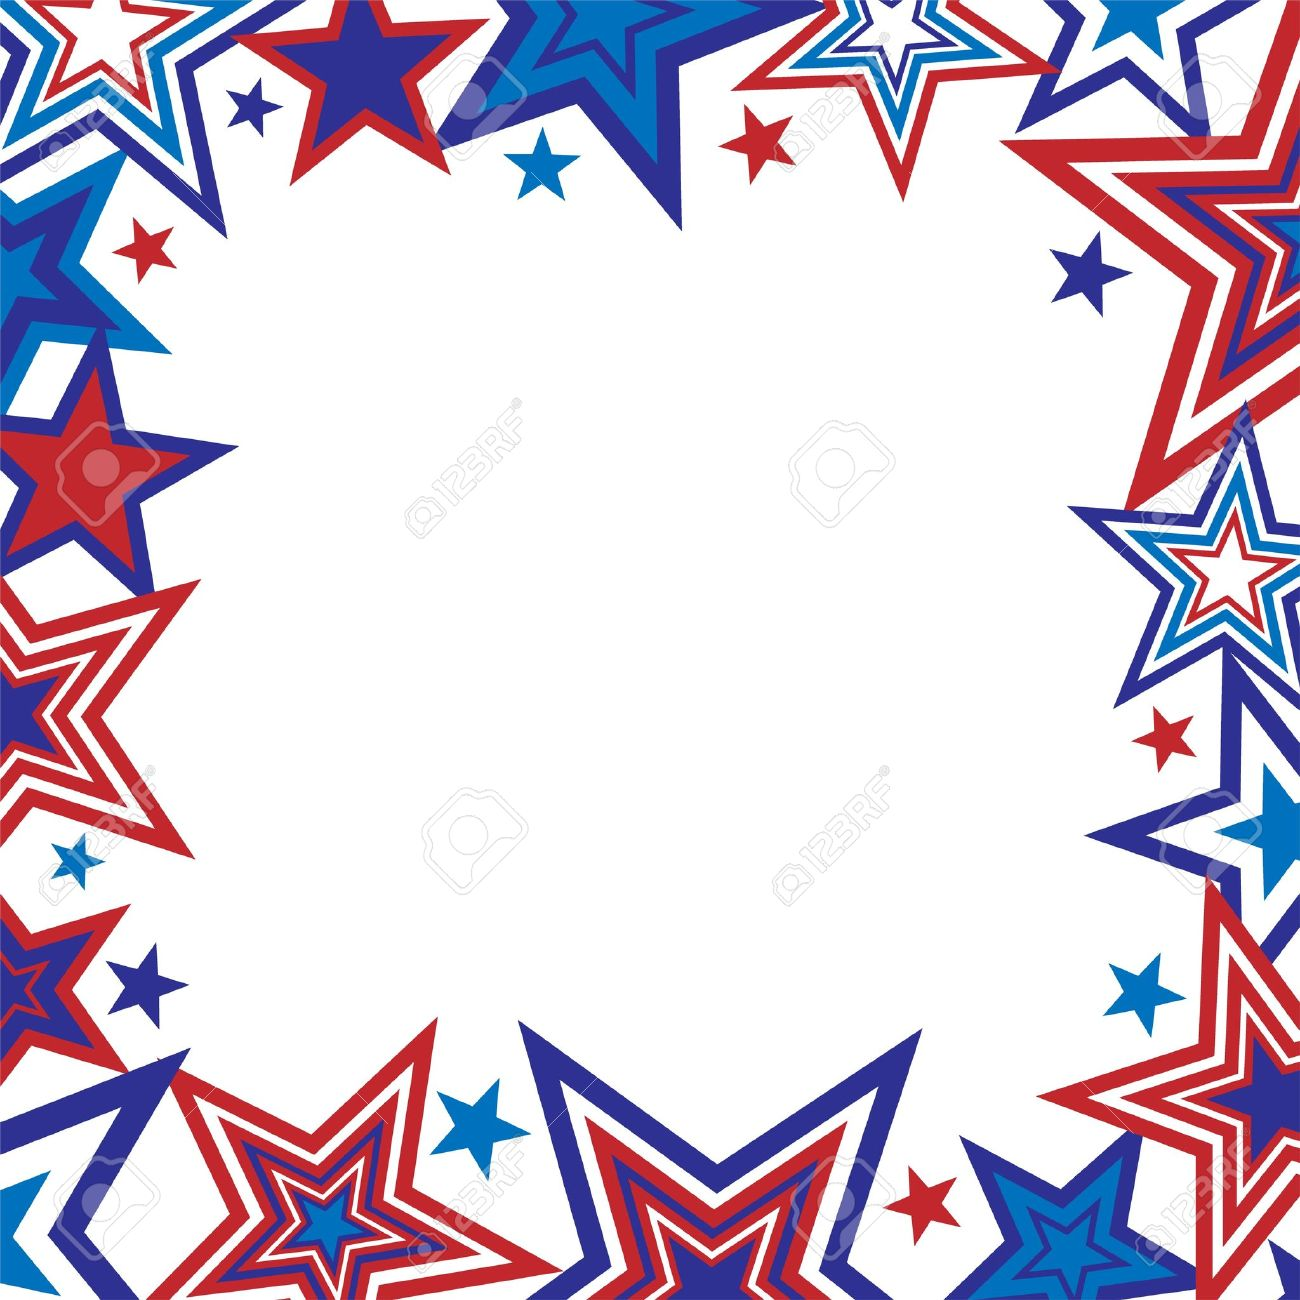 1300x1300 Illustration Of Red And Blue Stars Border On White Background